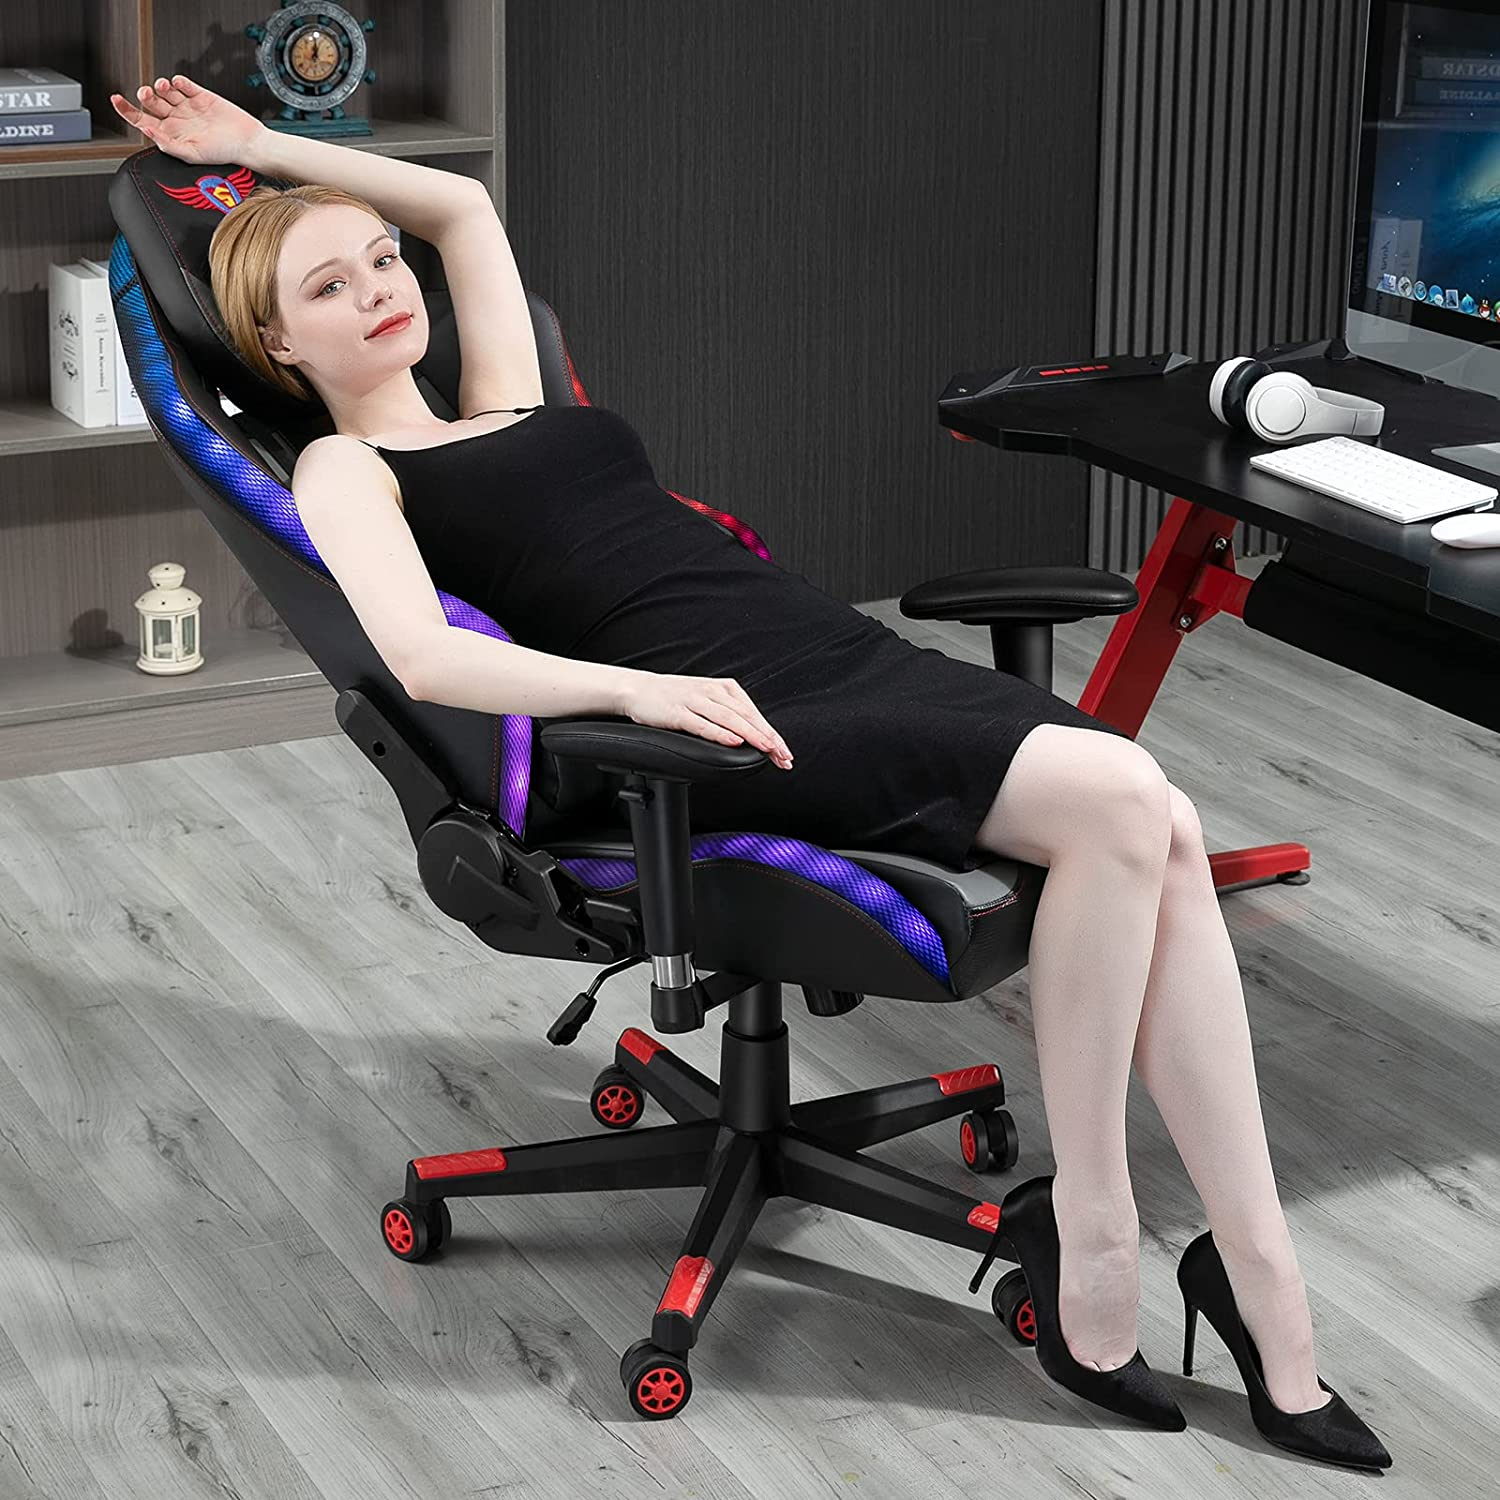 X-VOLSPORT Gaming Chair Computer Chair with RGB LED Lights Office Chair Gaming Chairs PU Leather Swivel Racing Style Video Game